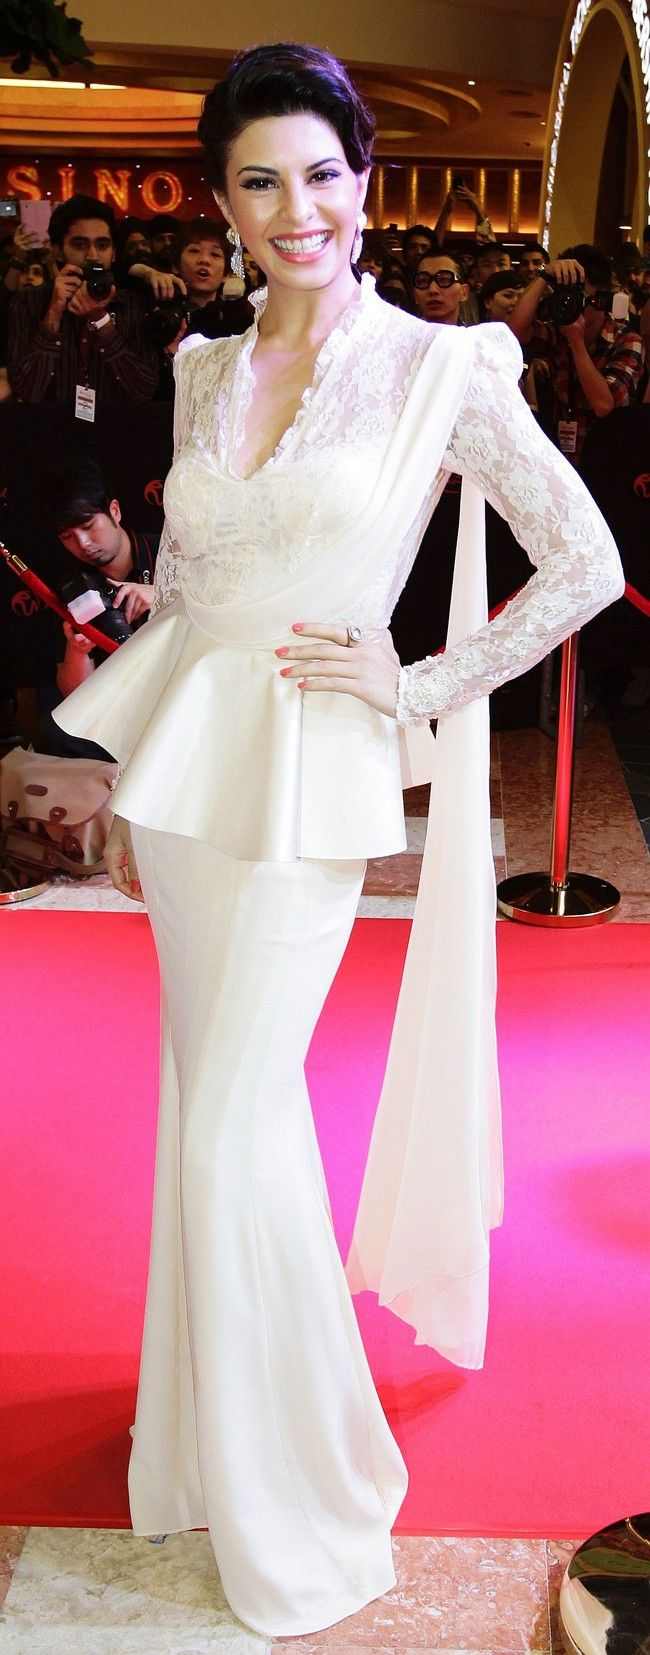 Jacqueline Fernandez. Oh god her dress❤❤